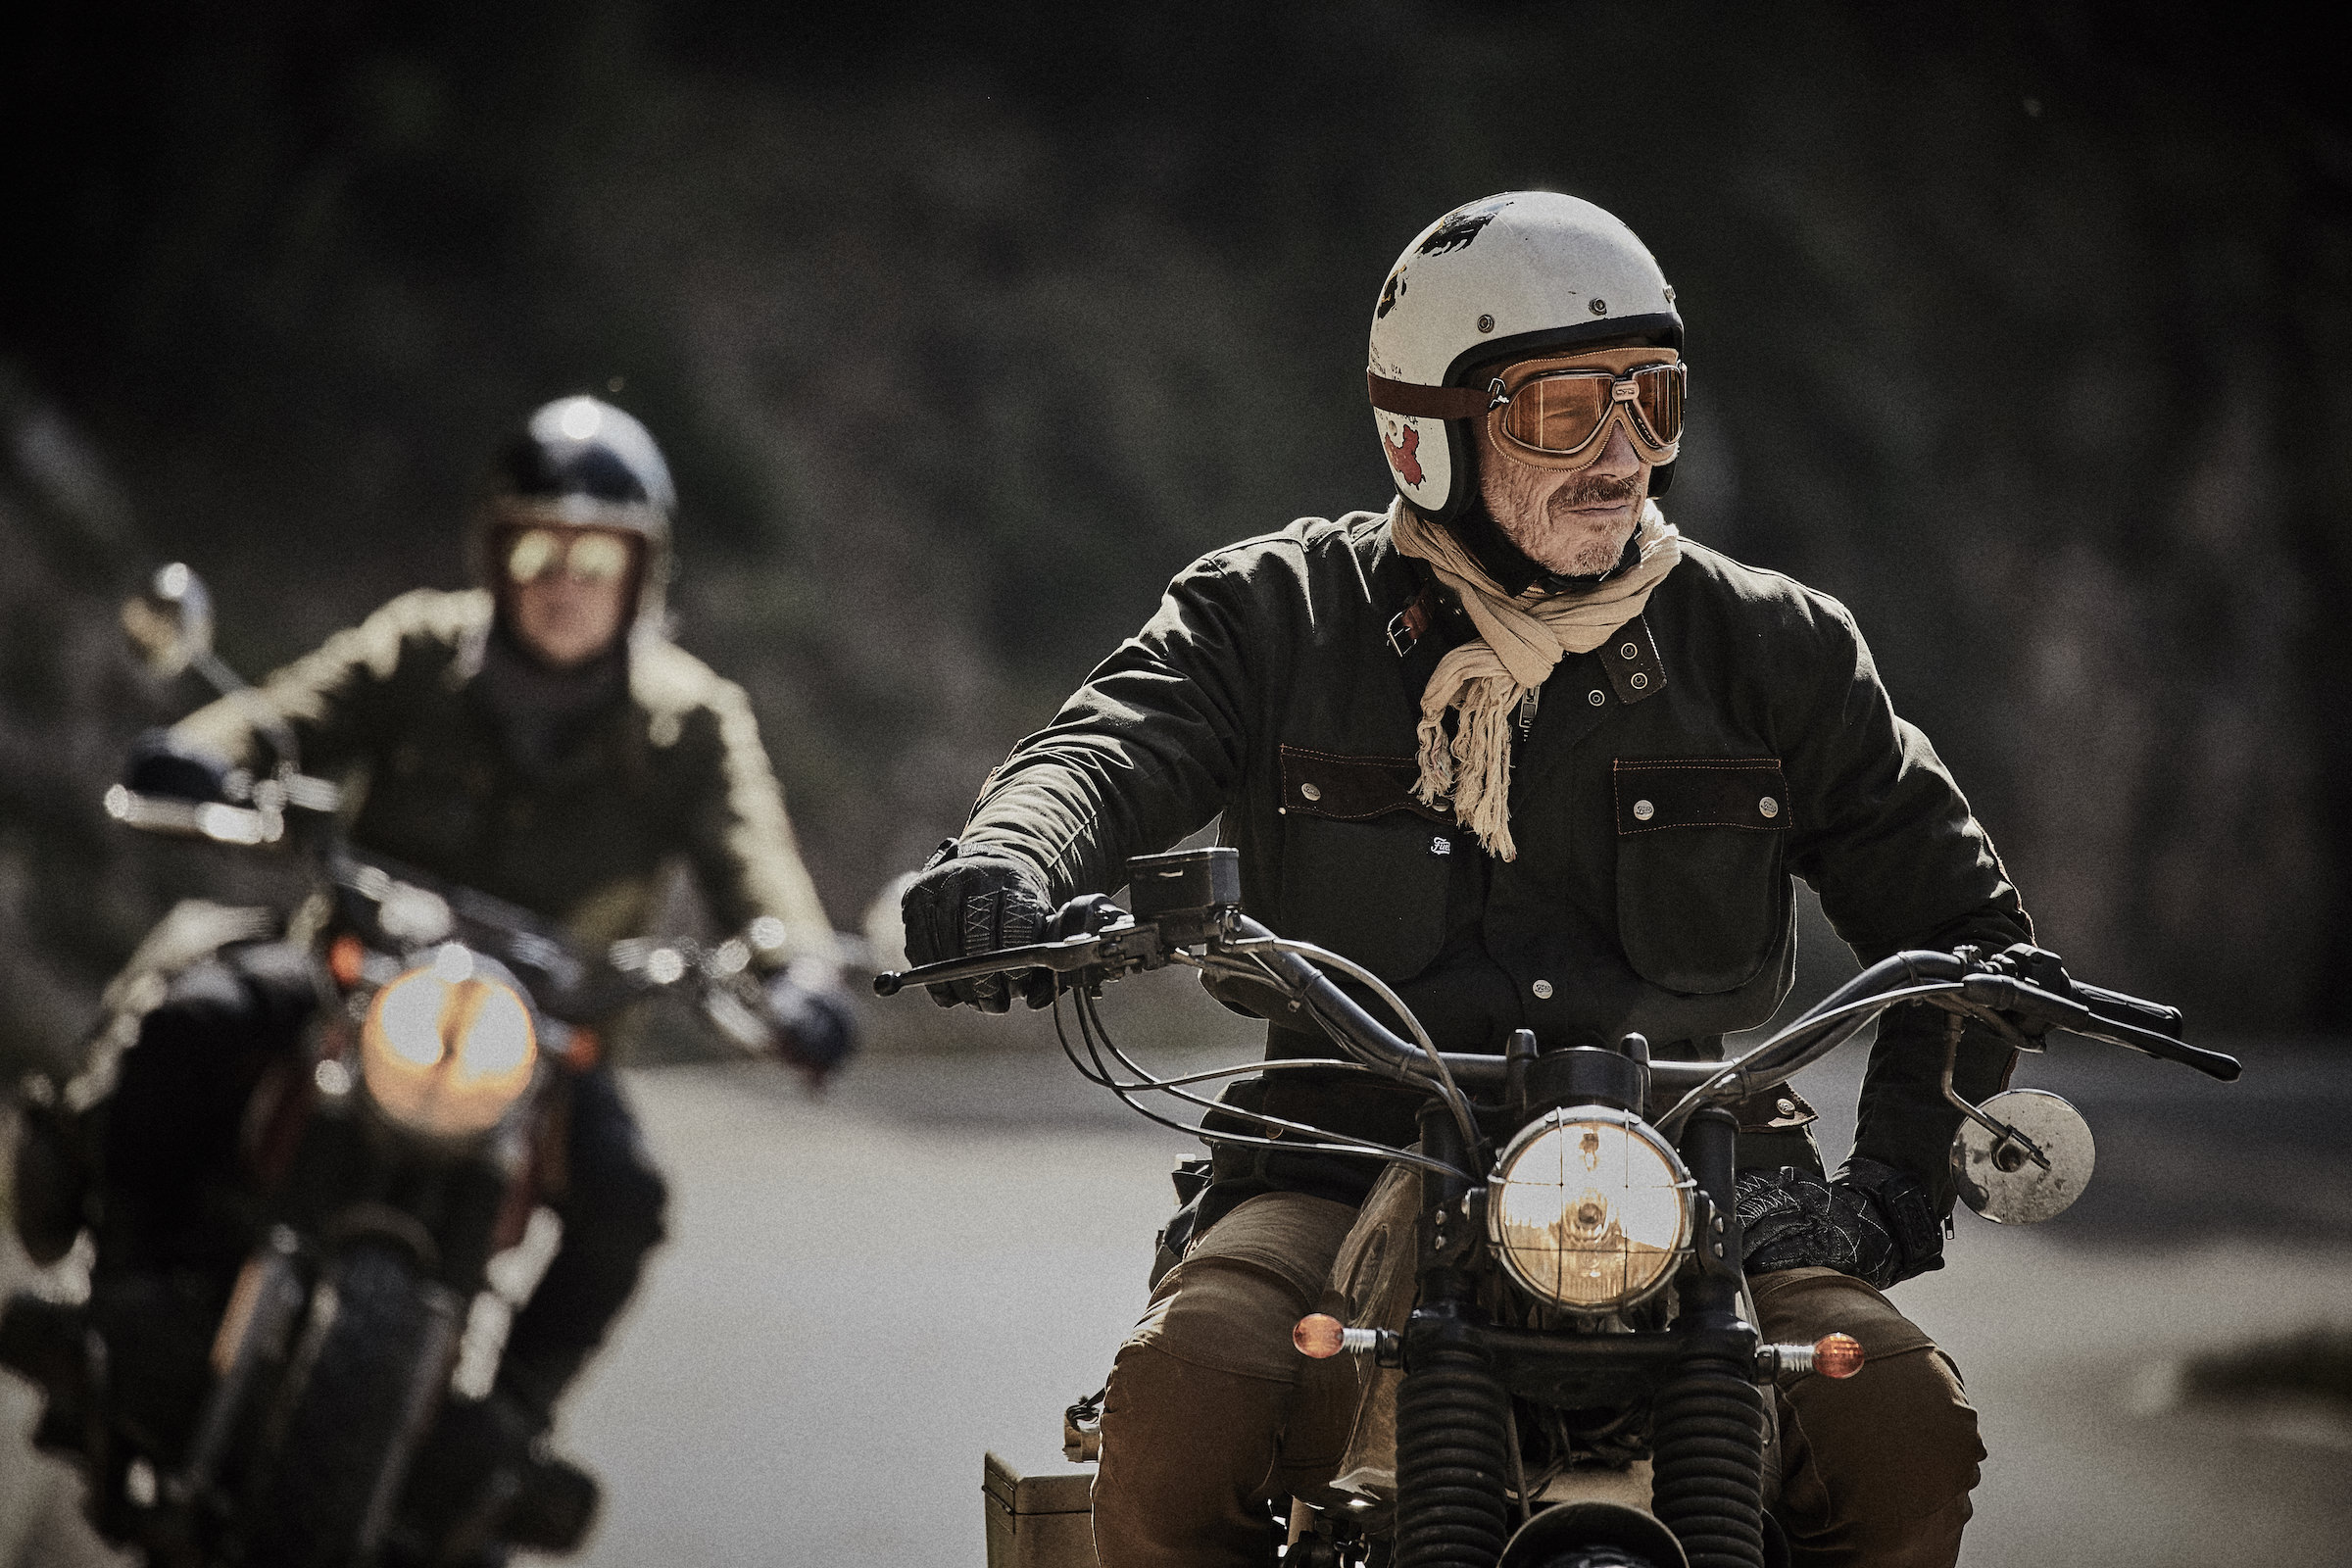 New Fuel Discovery Jacket - Classic Motorcycle Jacket Men On Motorcycles 1